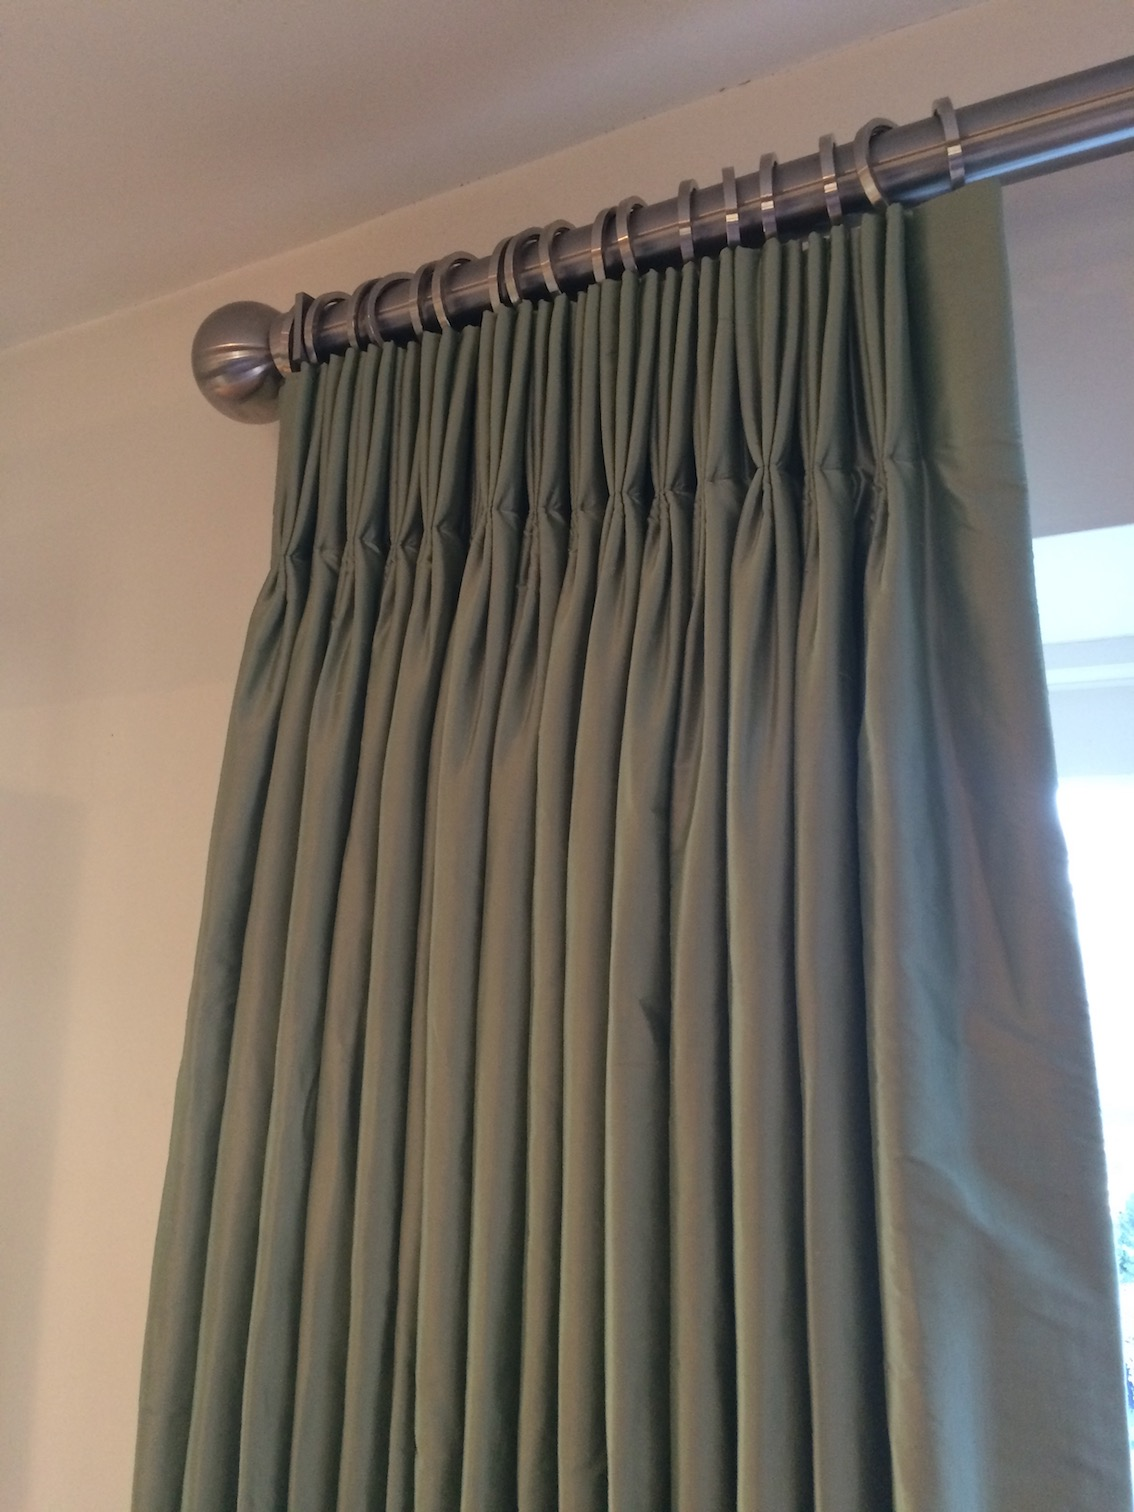 Pure Silk Curtains For A Sumptuous Sitting Room Latest News